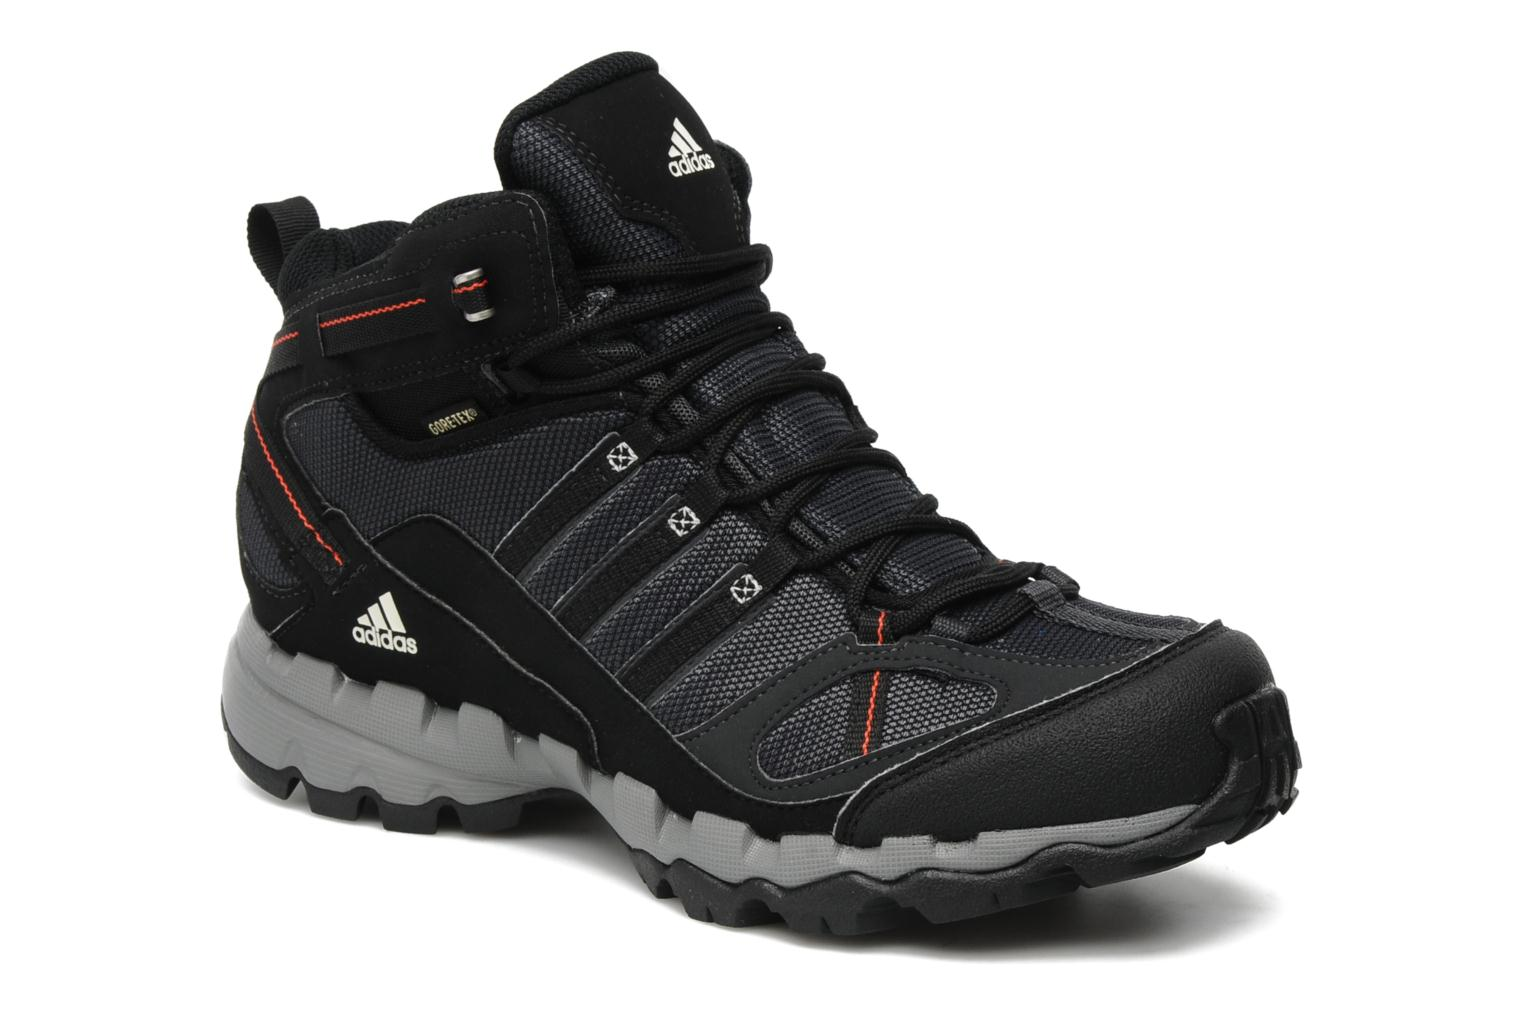 check out 04999 d4308 Foto Zapatillas deporte Adidas Performance AX 1 Mid GTX Hombre foto 215657